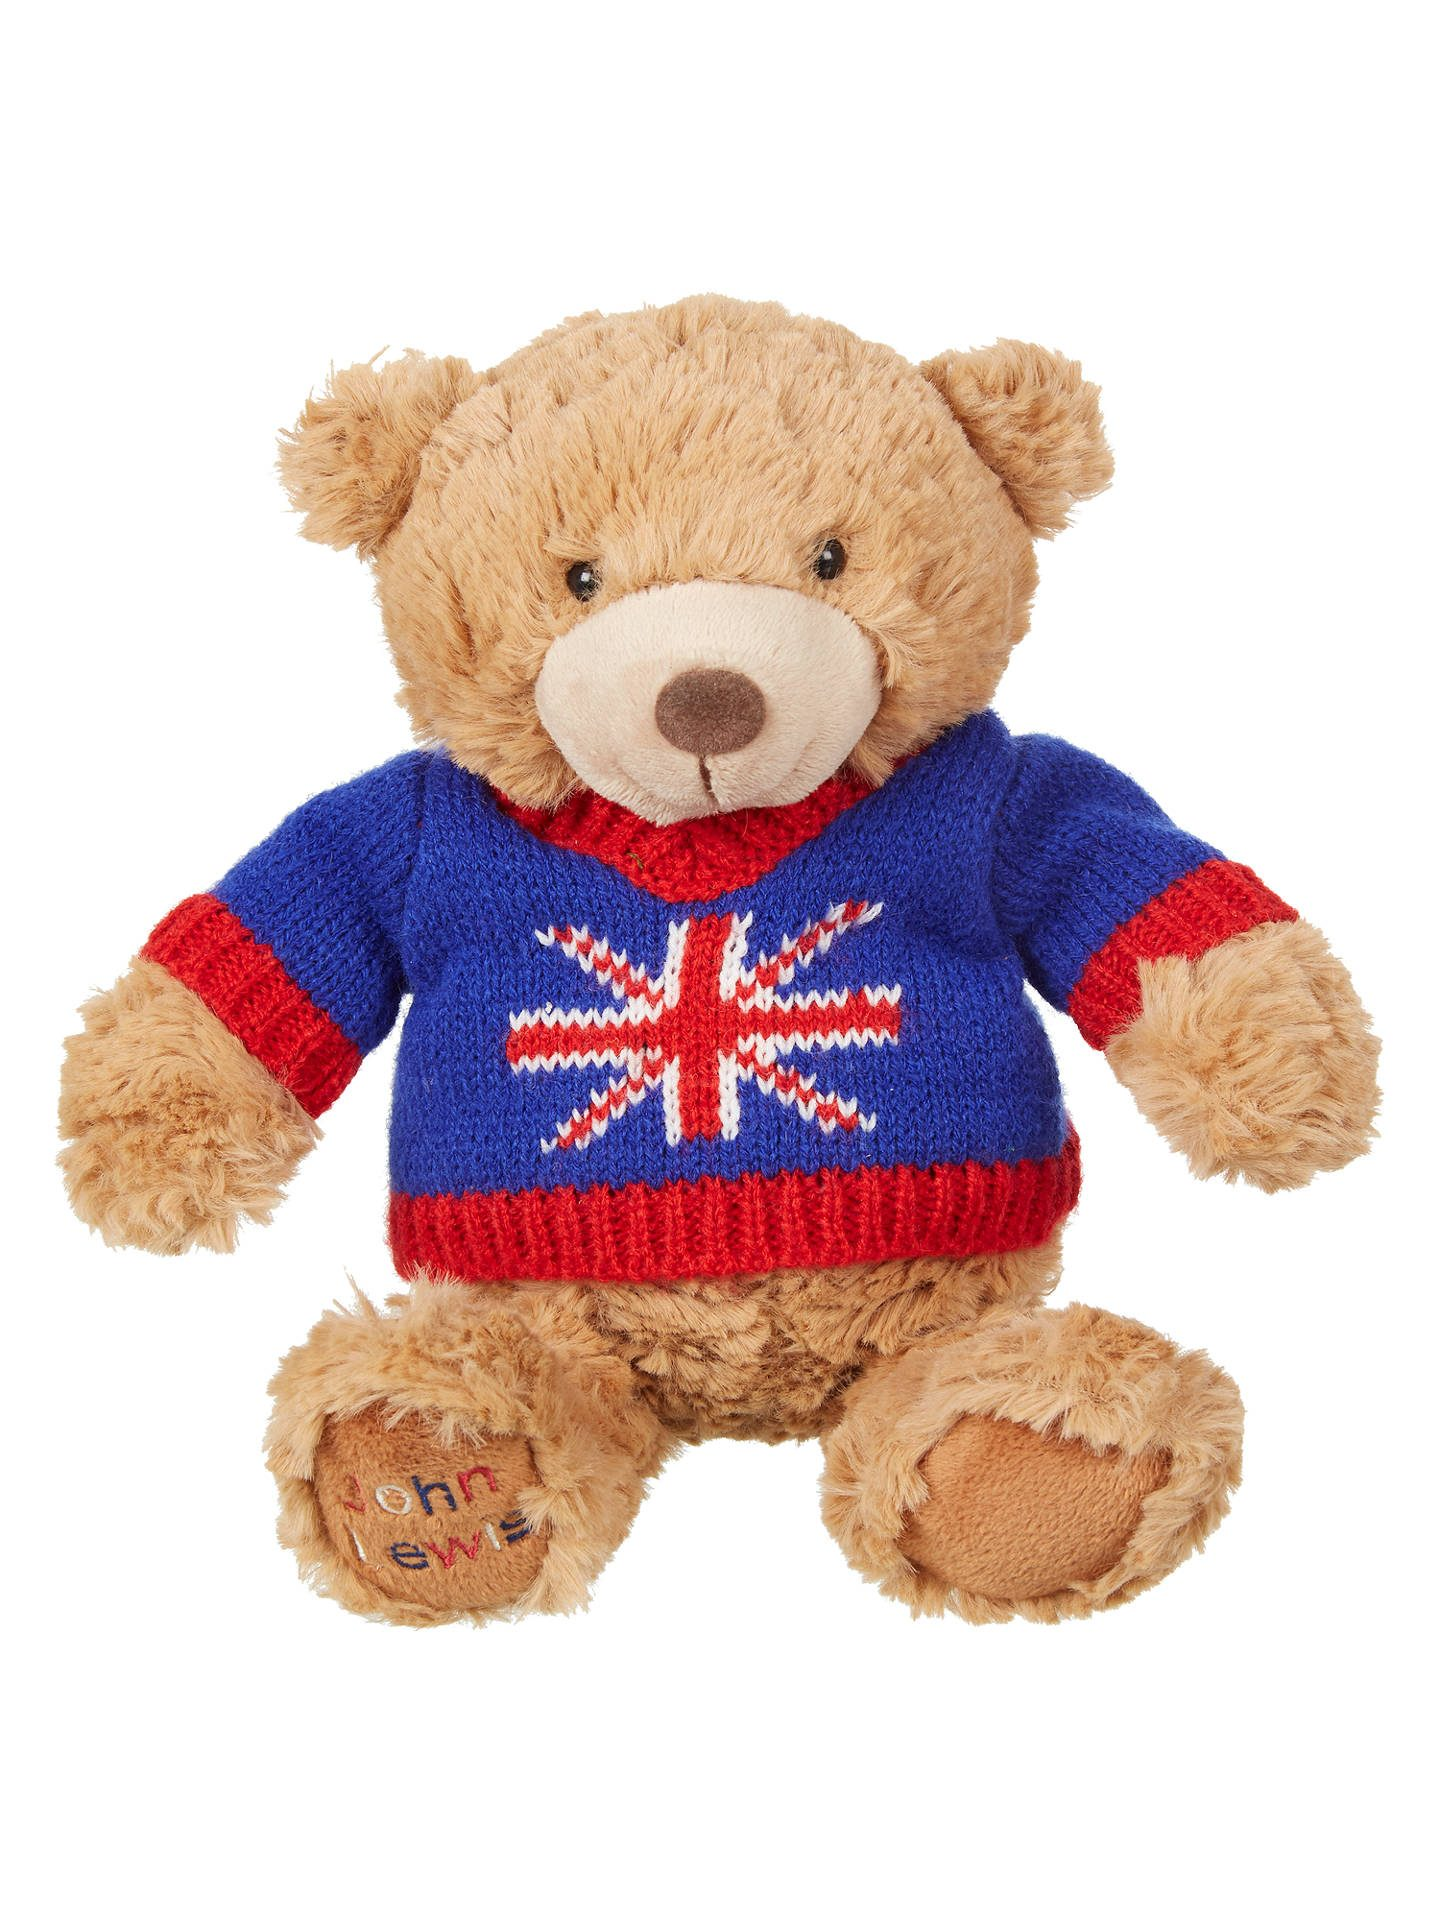 London Souvenirs Teddy Bear